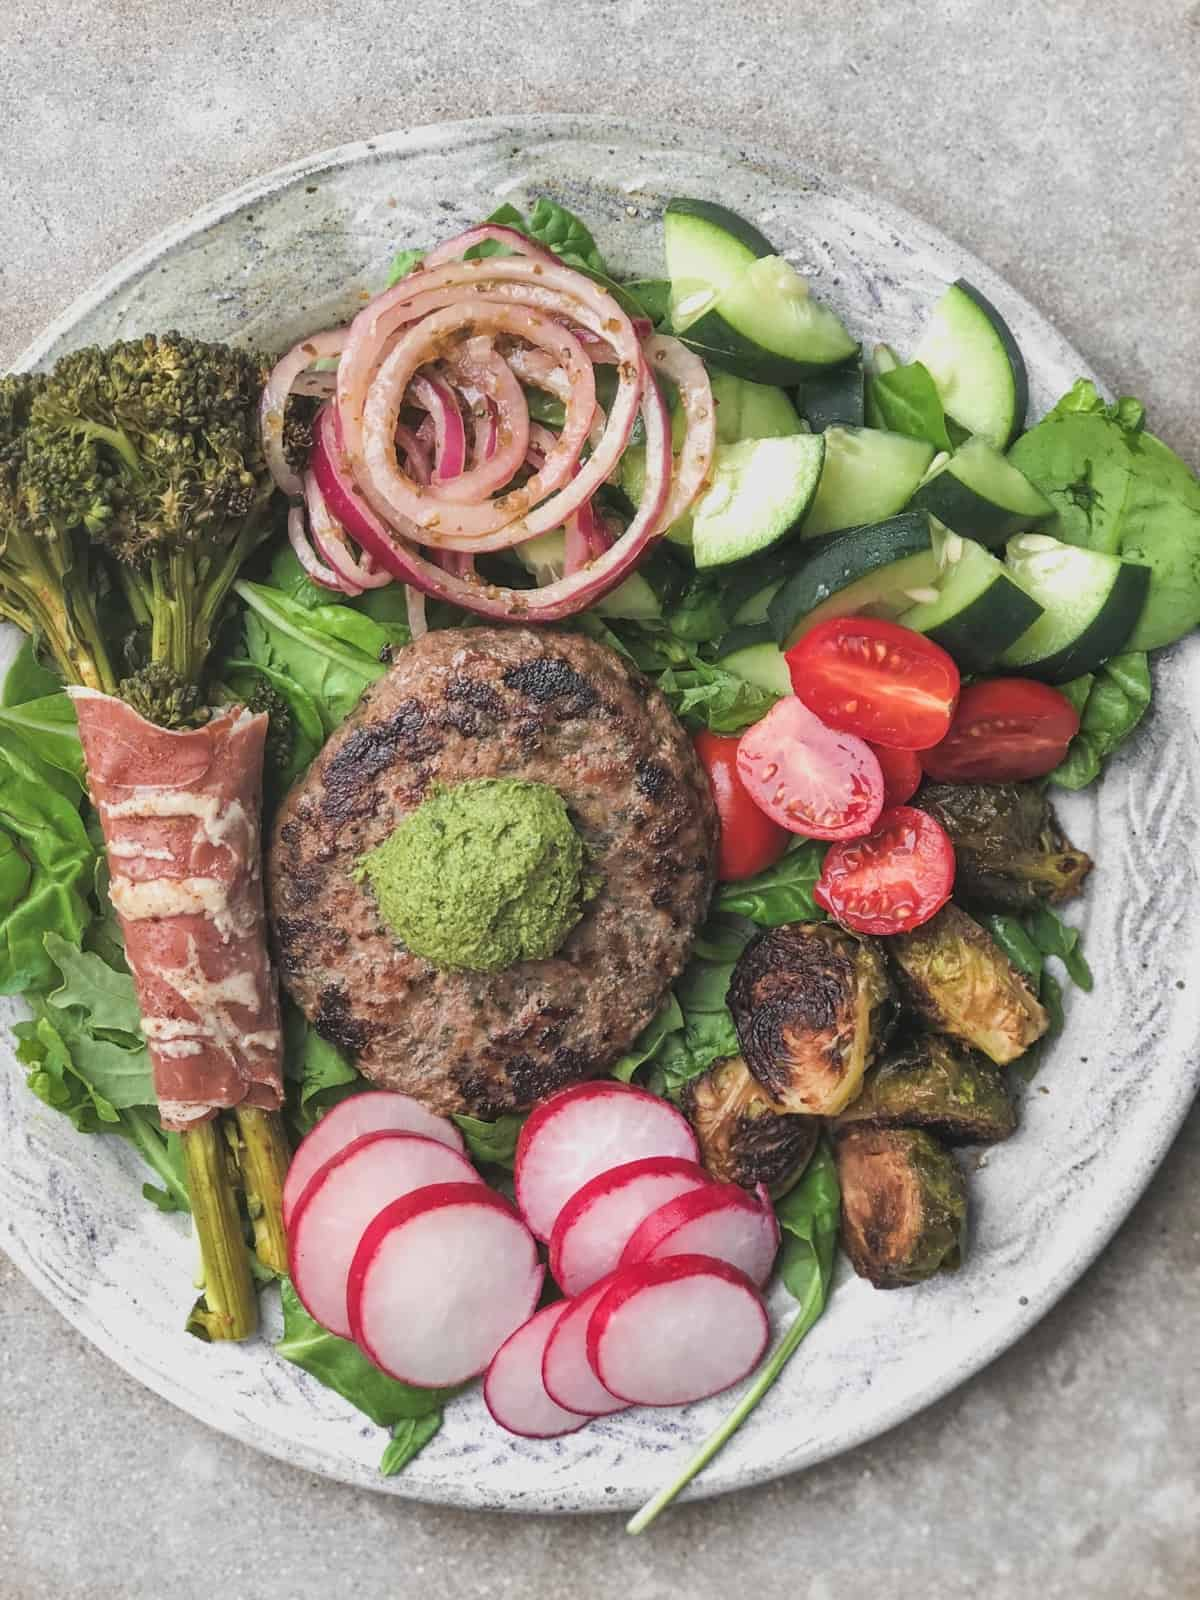 Big plate with greens, broccolini wrapped with prosuitto, marinated onions, cucumbers, tomatoes, brussels sprouts, radishes, and a burger with pesto on top